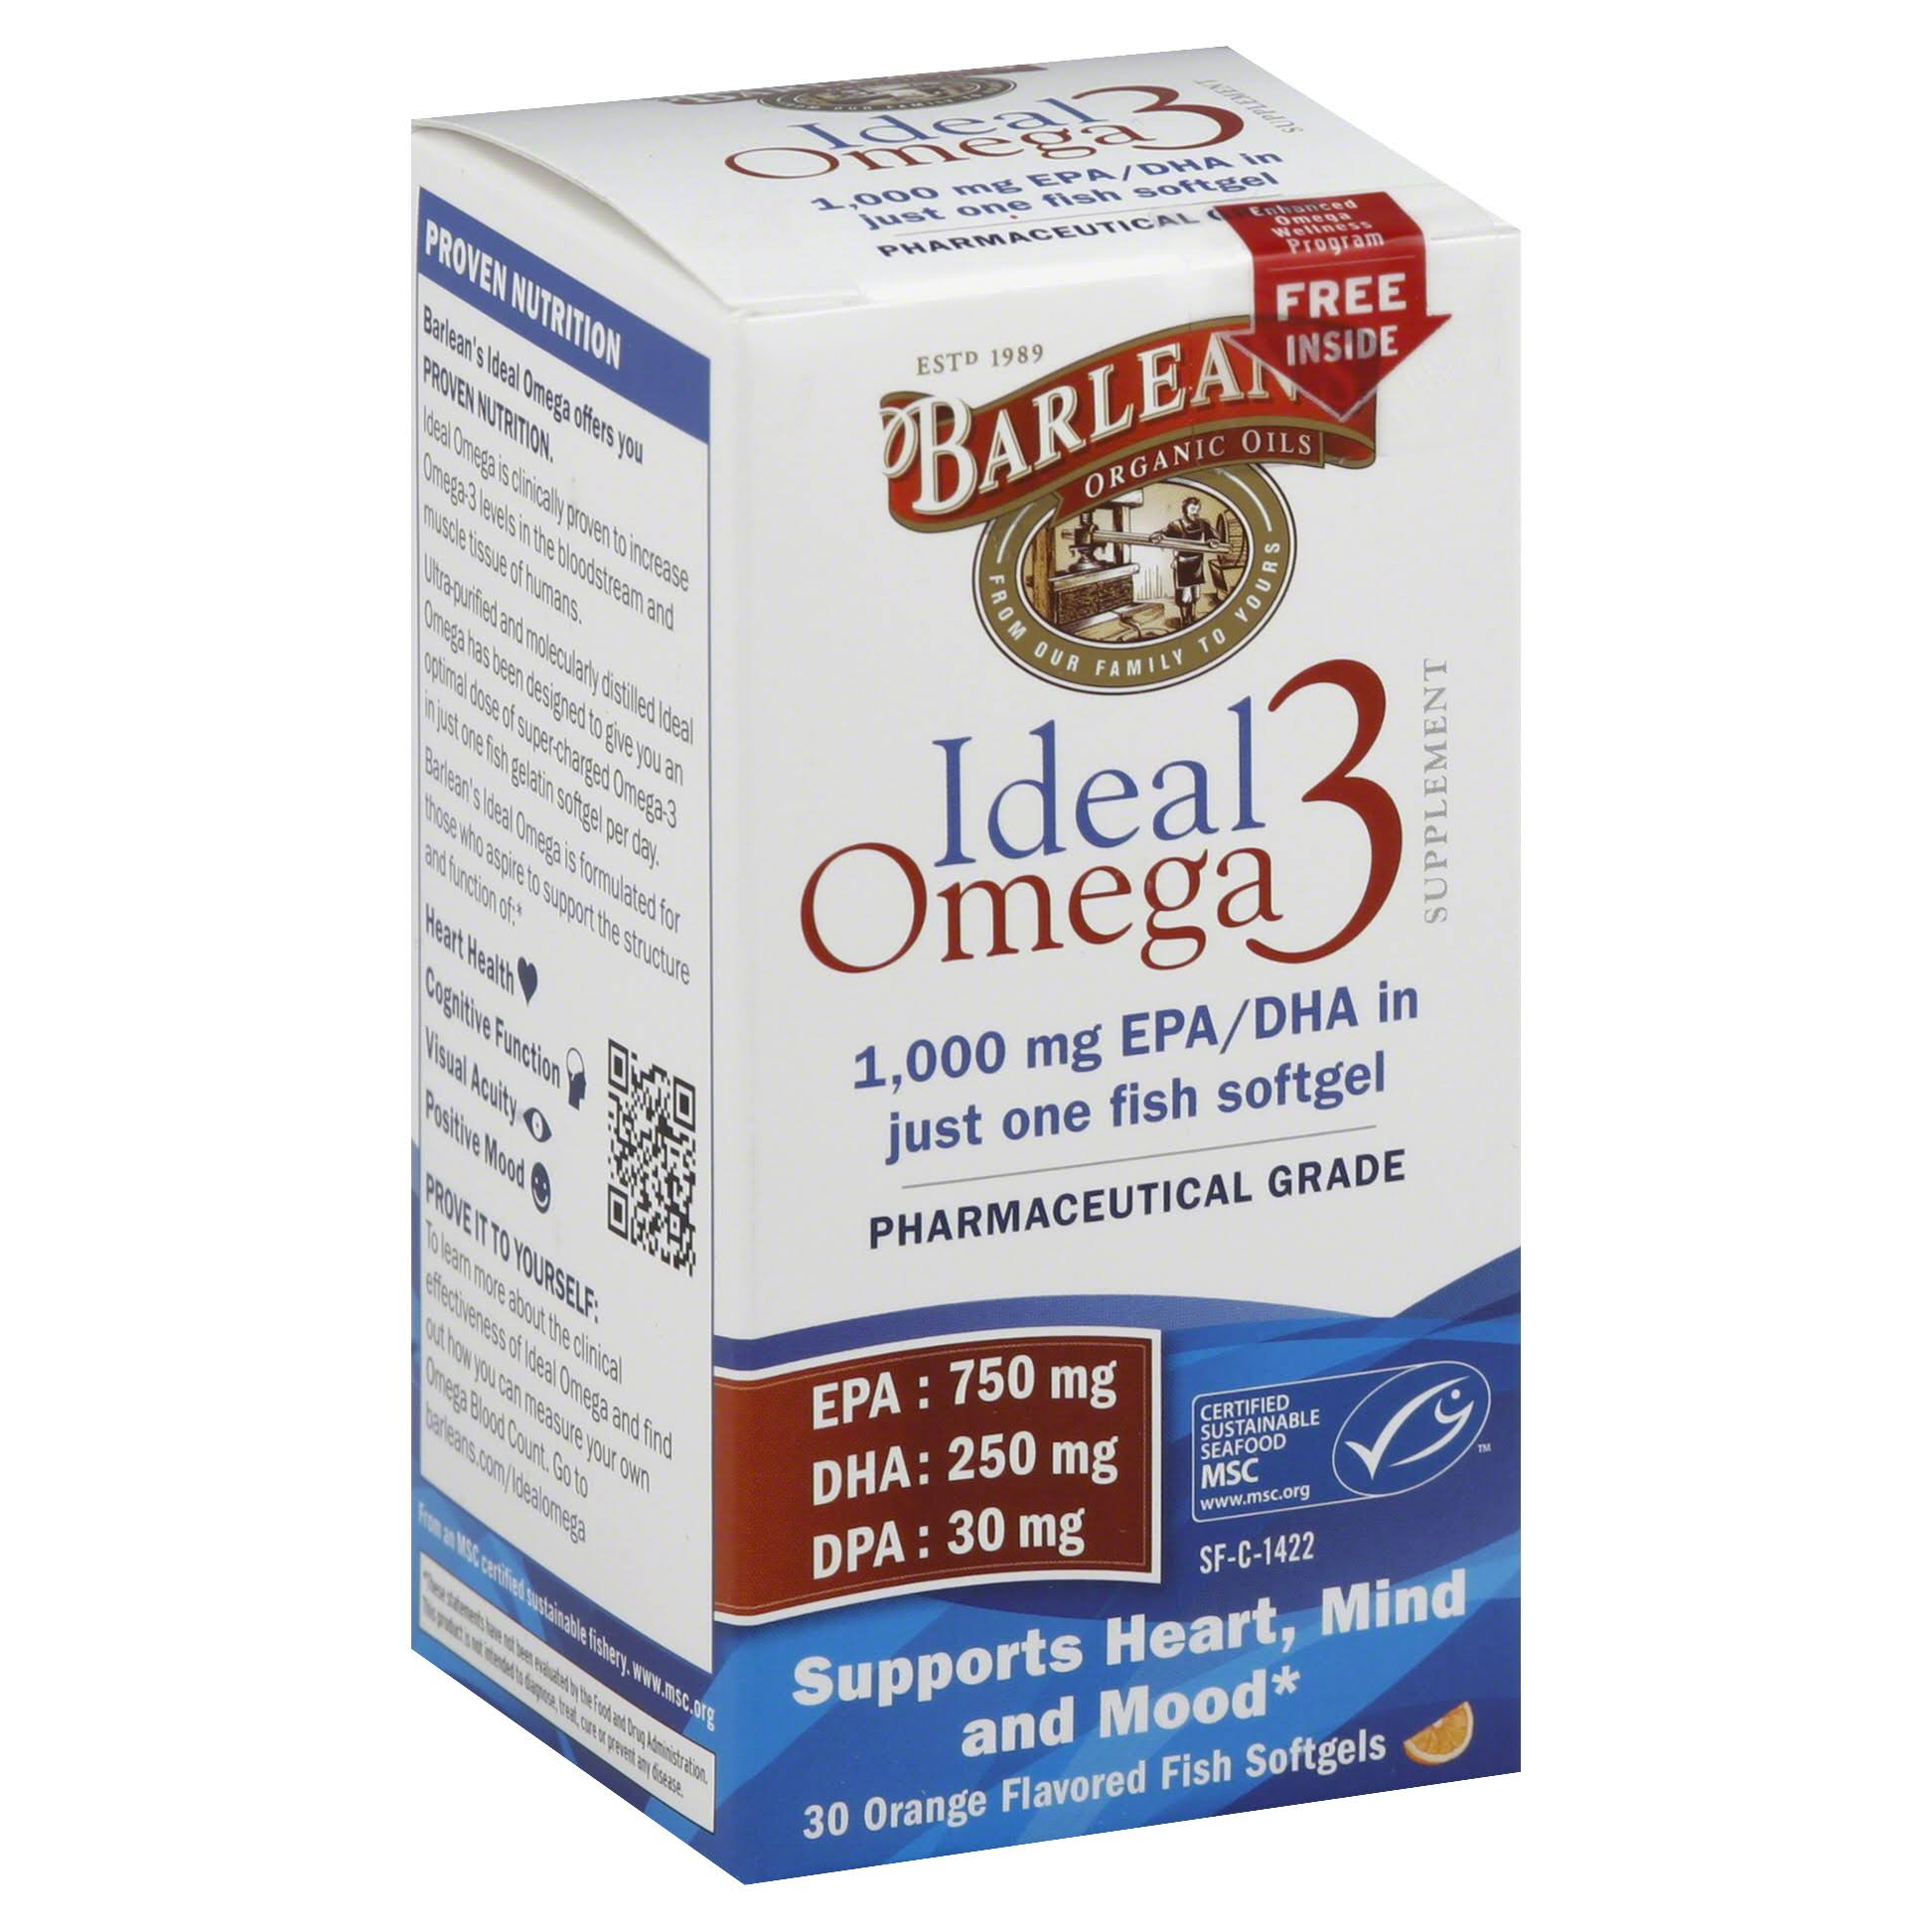 Barlean's Organic Oils Ideal Omega-3 Nutritional Supplement Softgel - 30ct